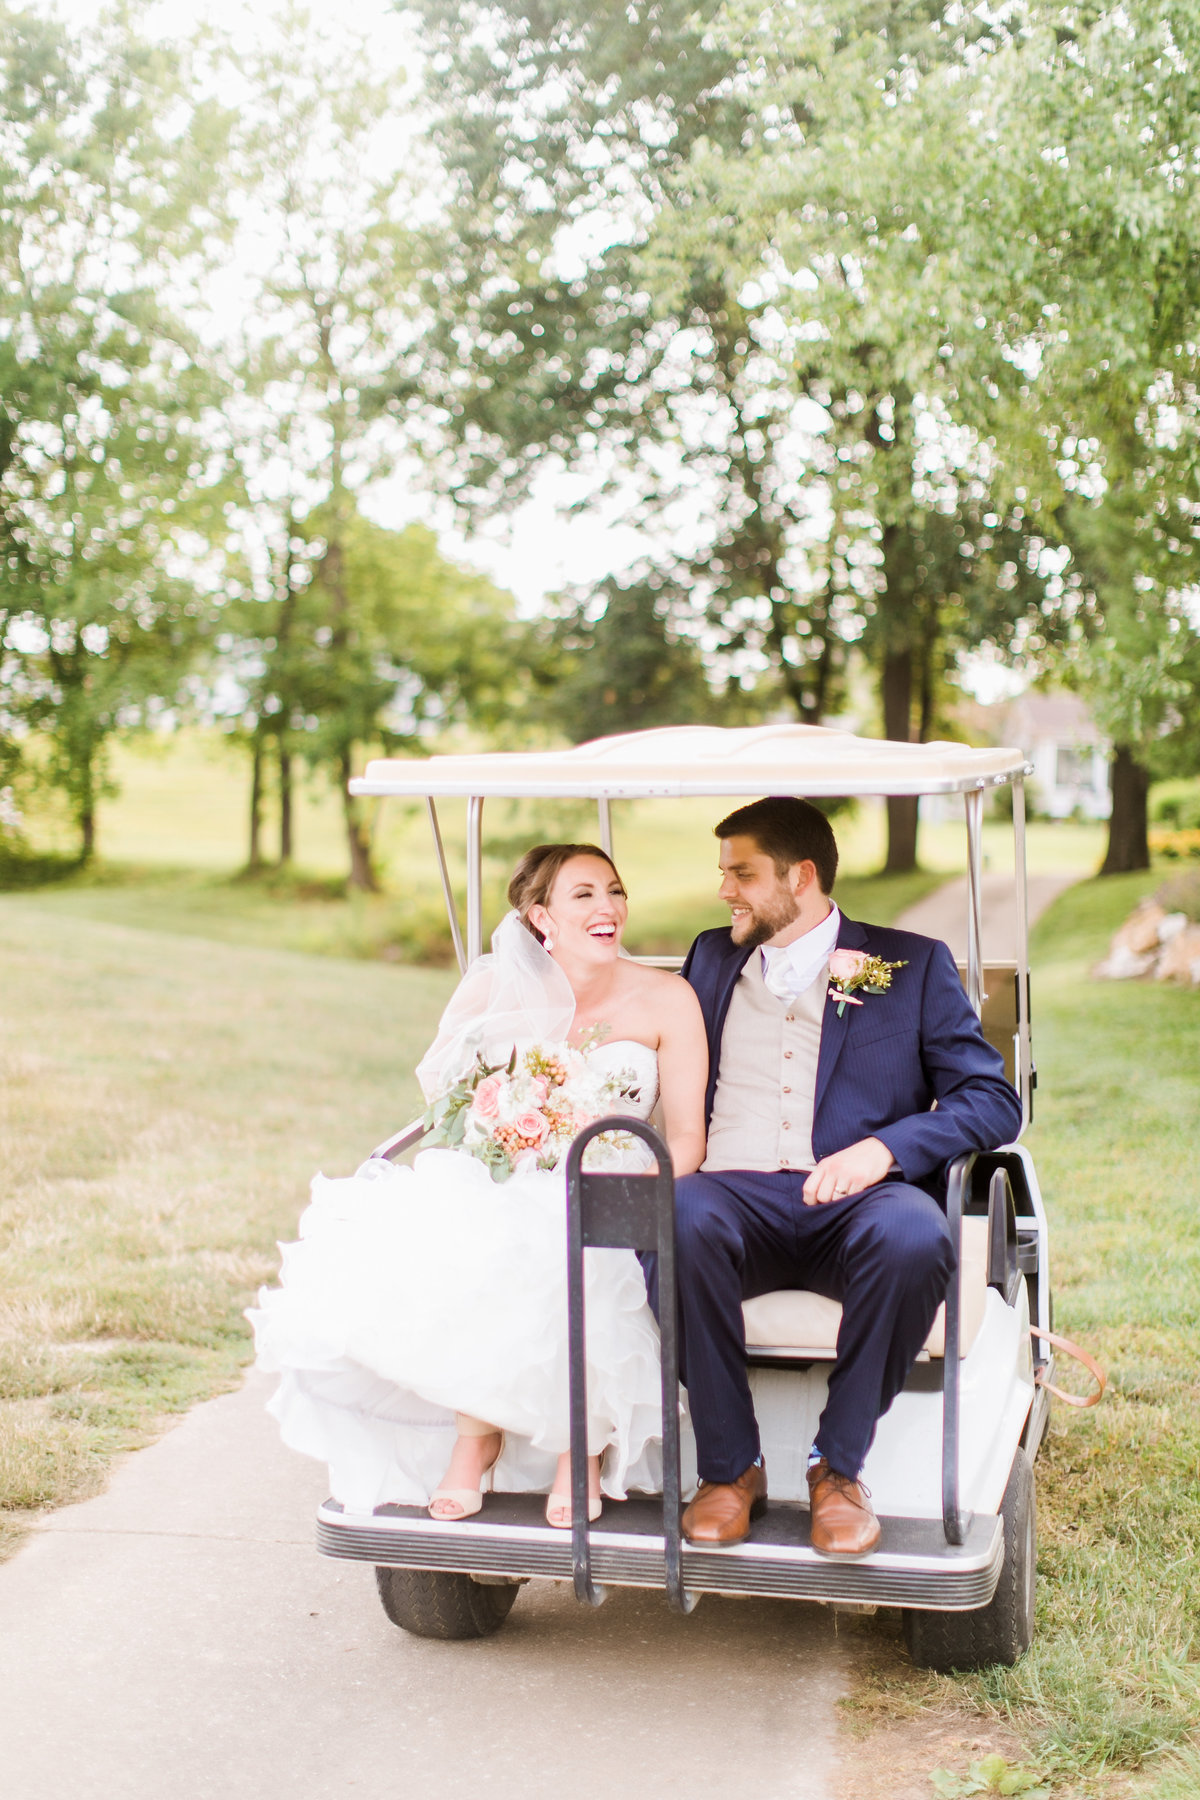 BearCreekGolfCourseWedding_KaityChaz_CatherineRhodesPhotography-9